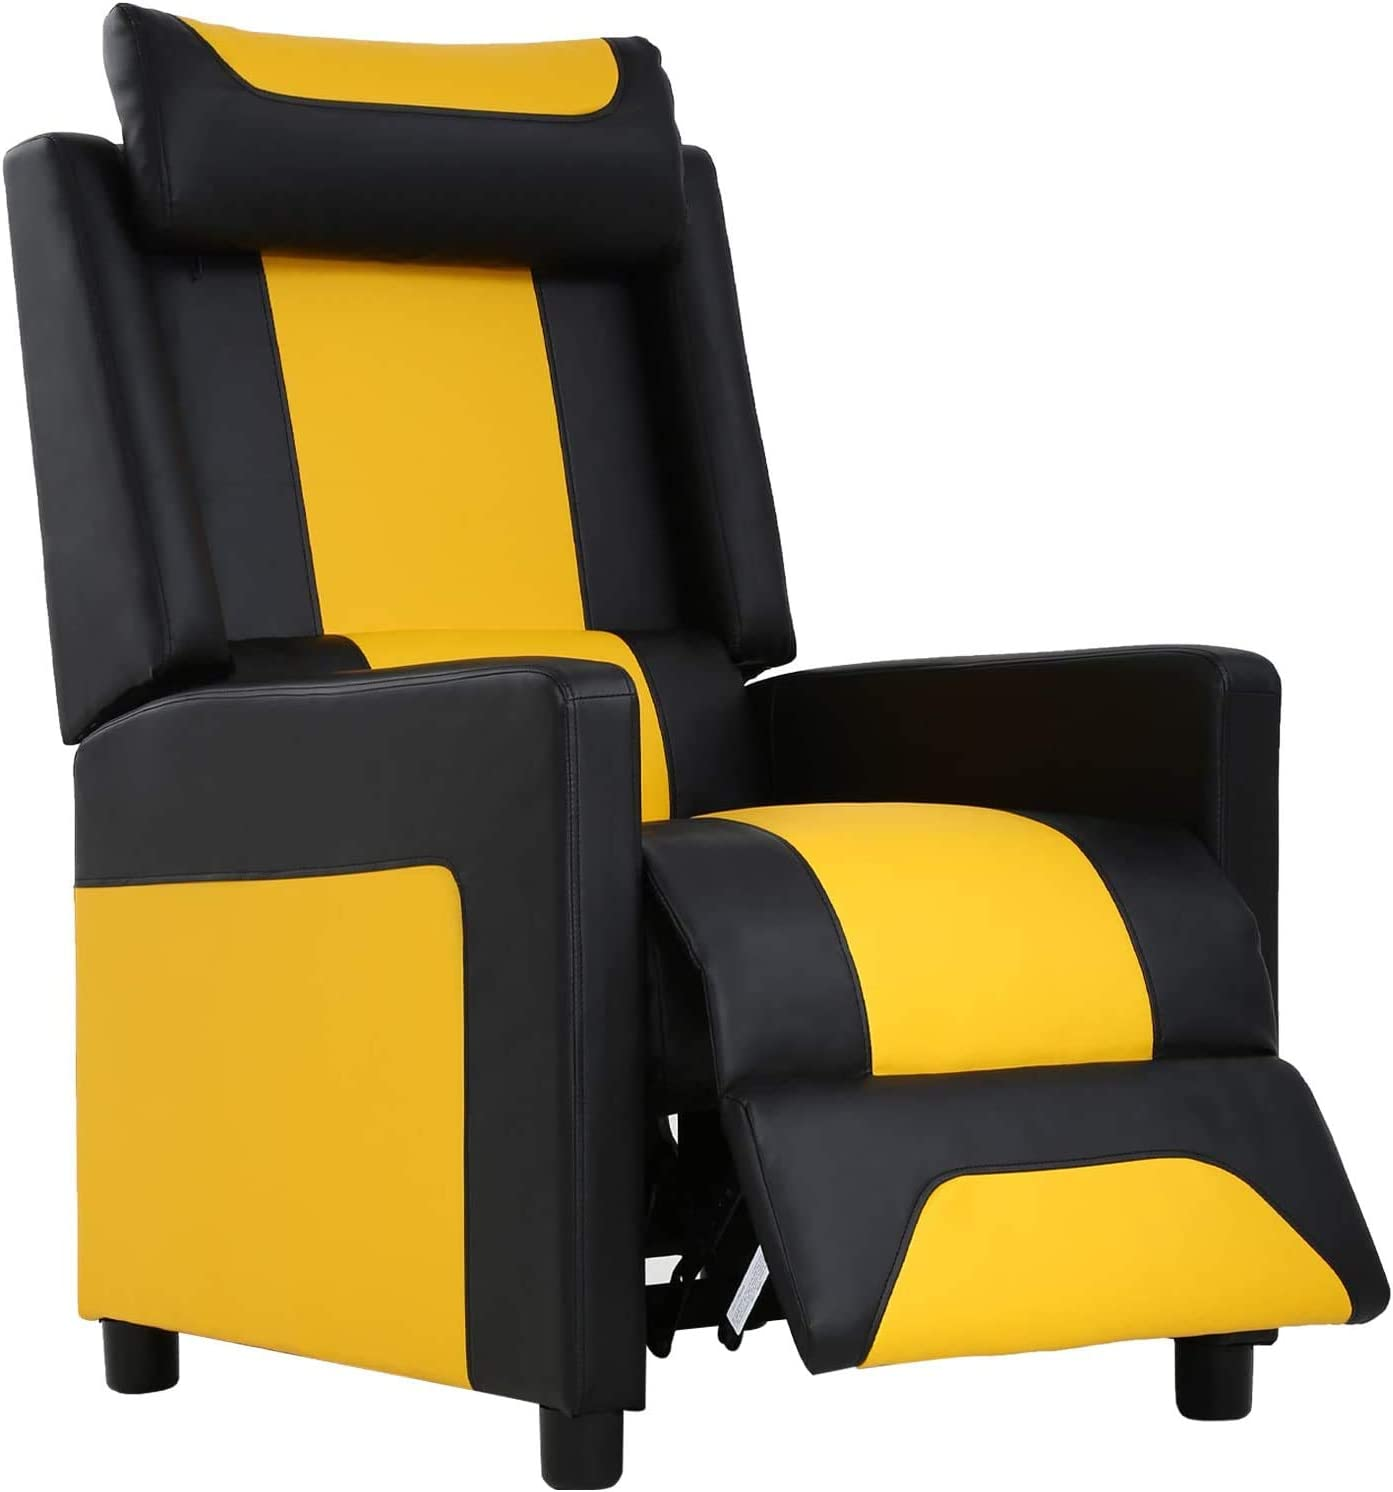 Recliner Chair Recliner Gaming Chairs